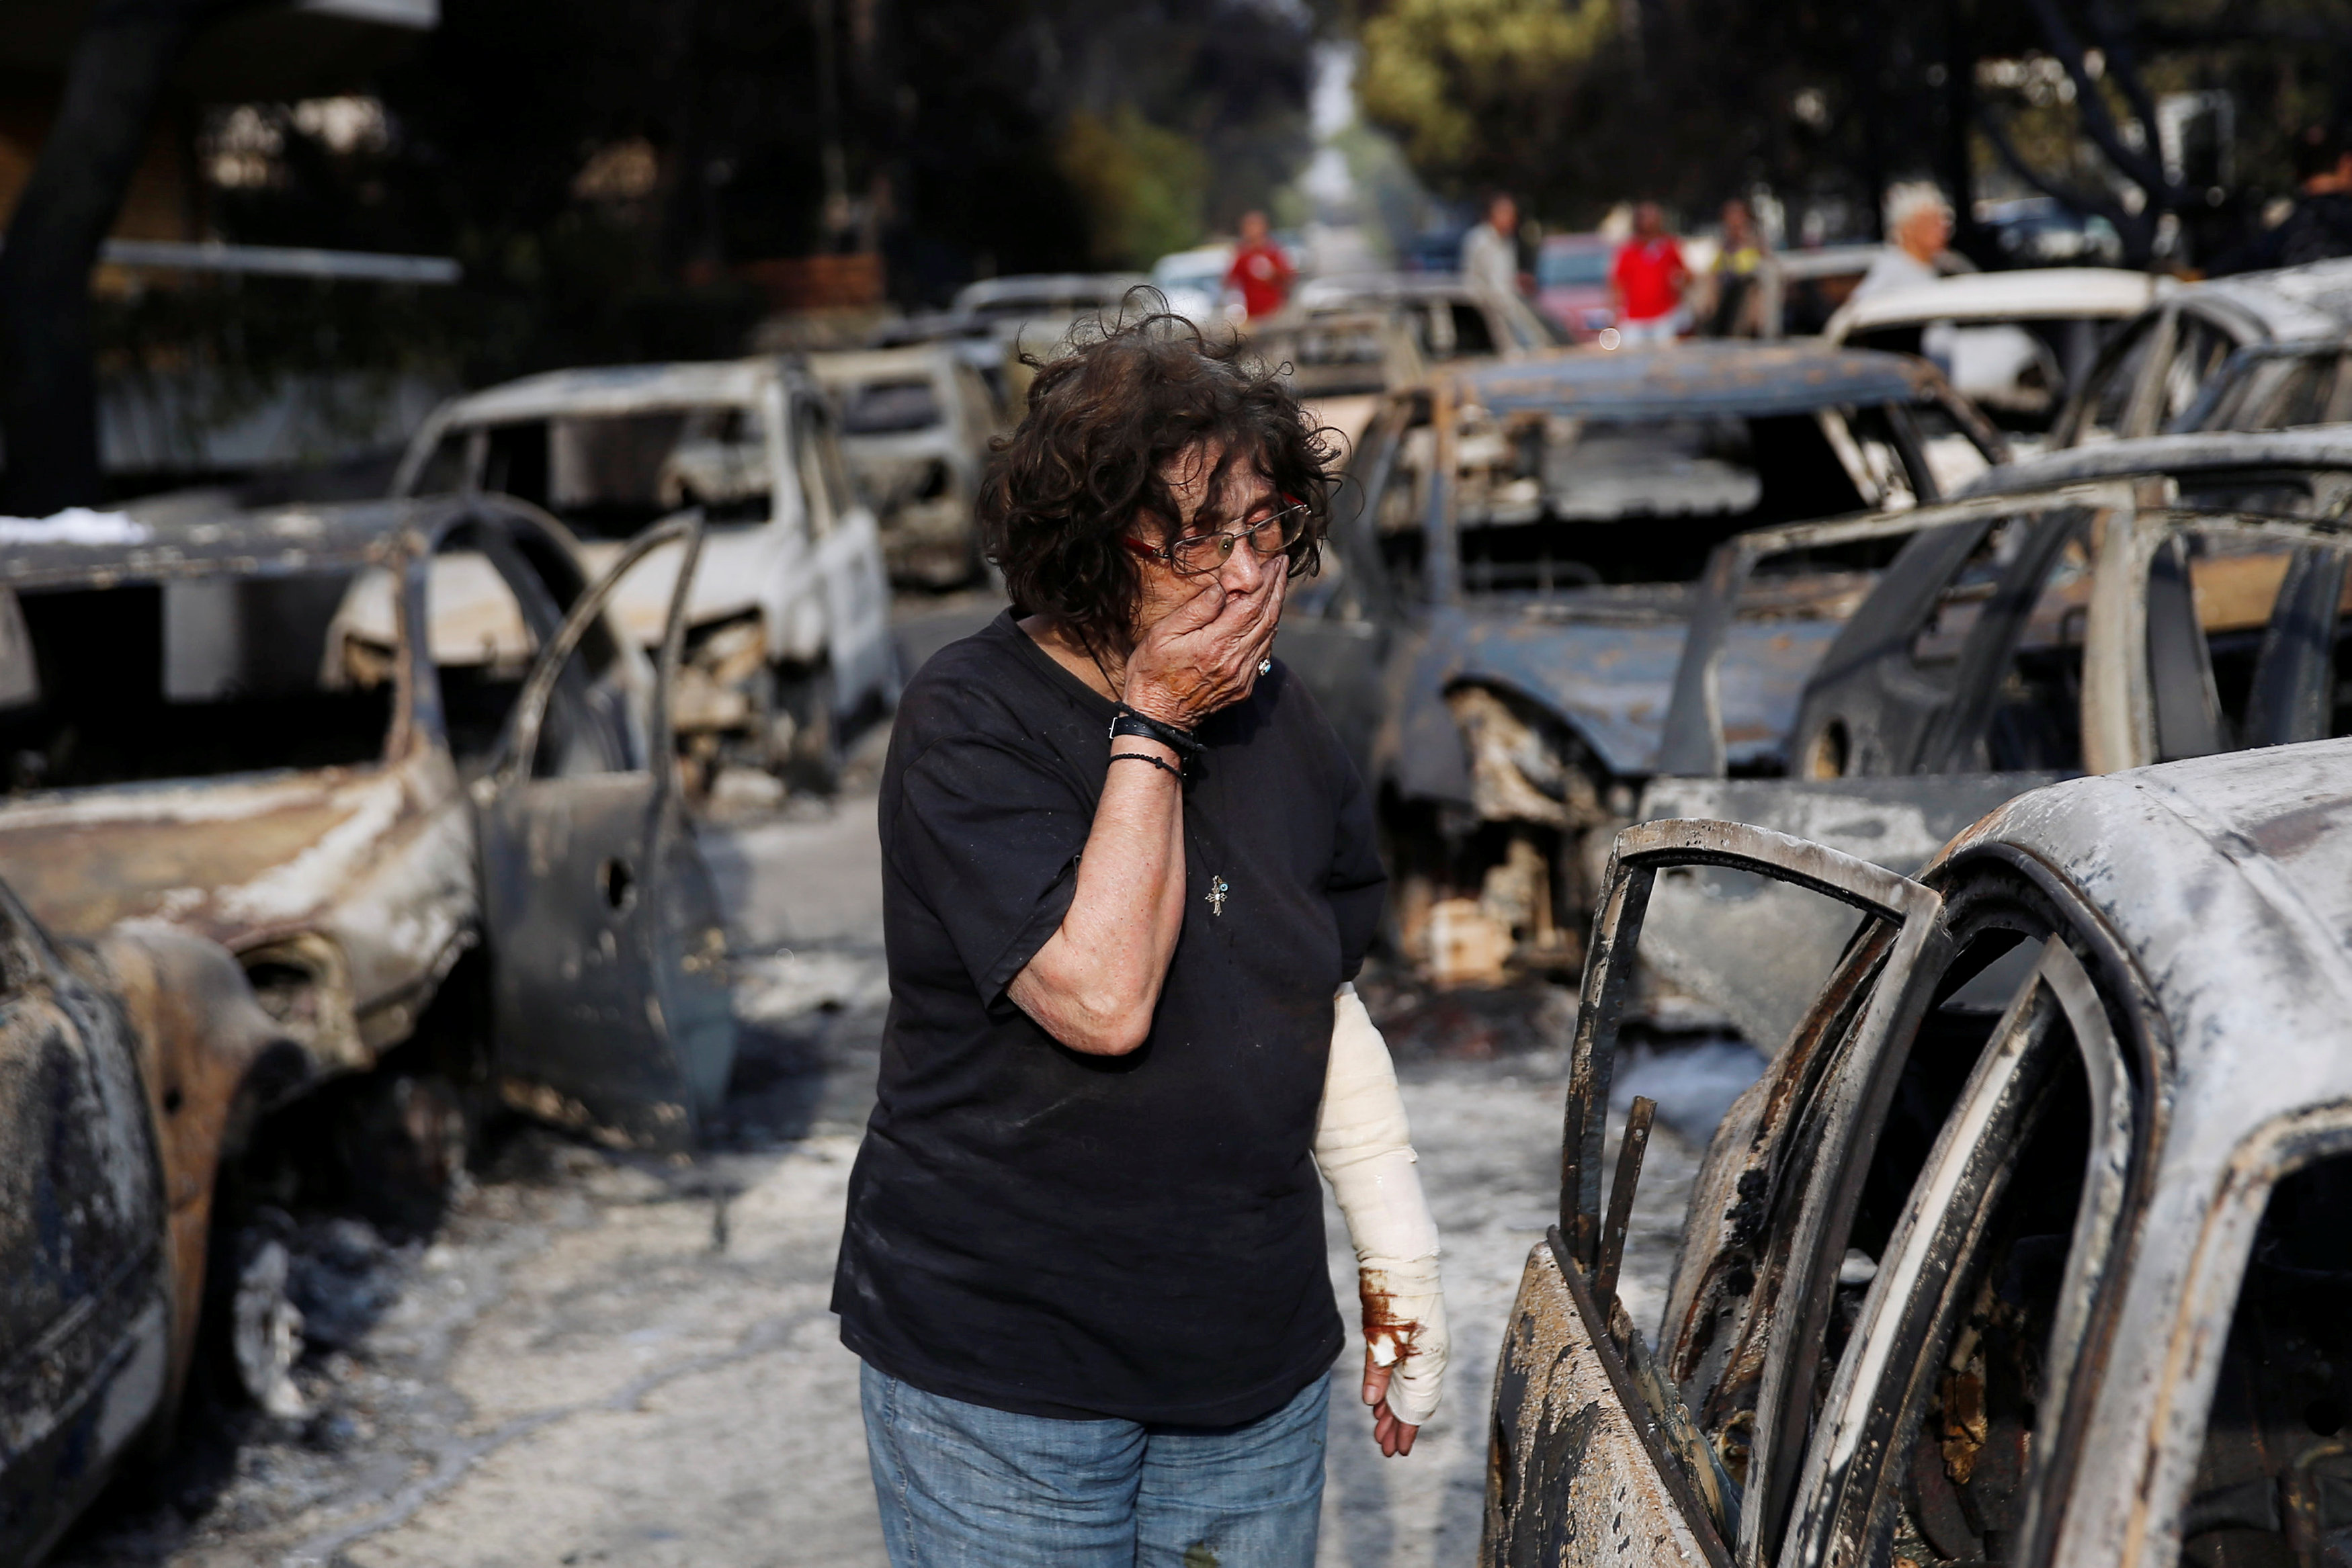 A woman reacts as she tries to find her dog, following a wildfire at the village of Mati, near Athens, Greece July 24, 2018. REUTERS/Costas Baltas